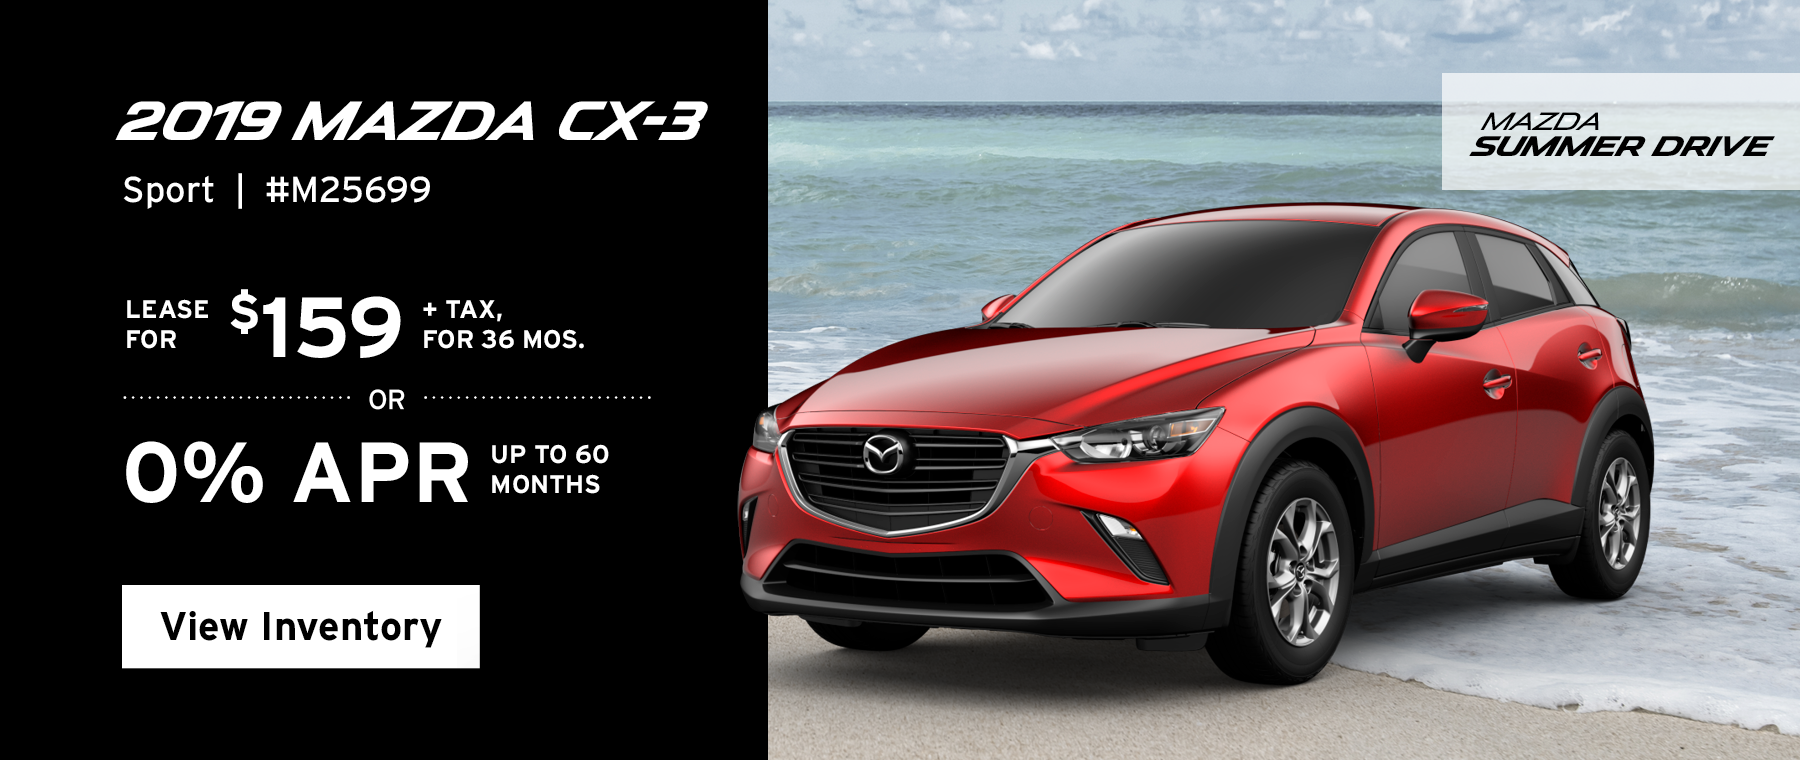 Lease the 2019 Mazda CX-3 Sport for $159, plus tax for 36 months, or 0% APR up to 60 months.